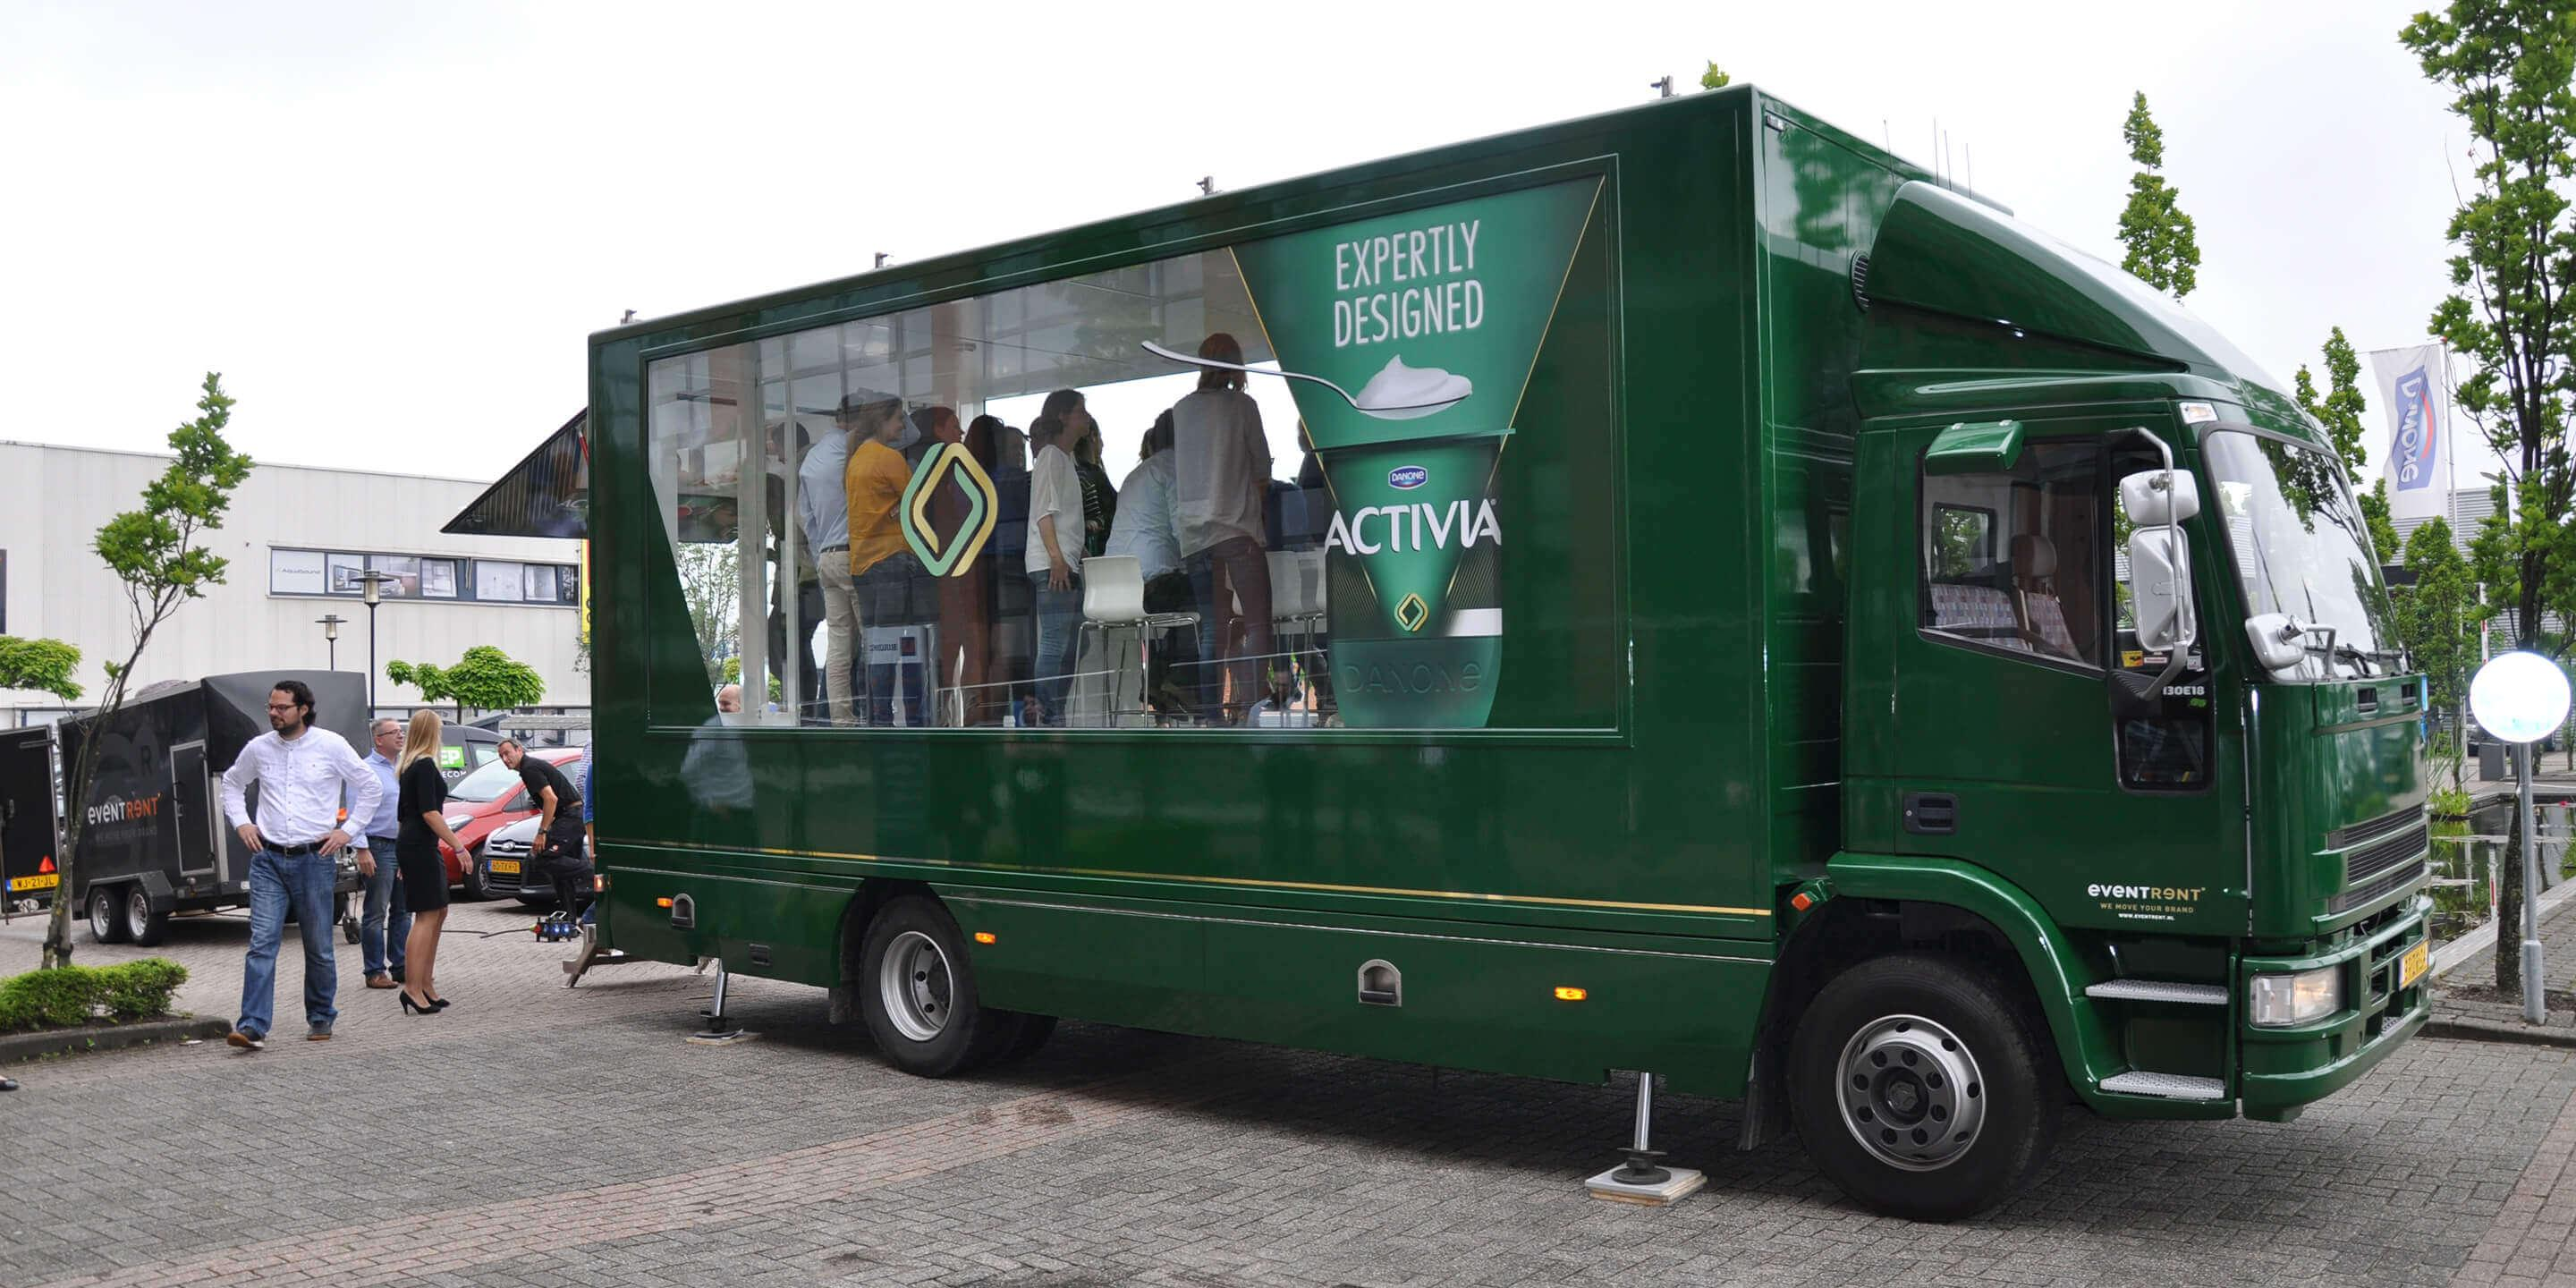 Display Trailers: The Sky Box Mobile Showroom for Danone Activation